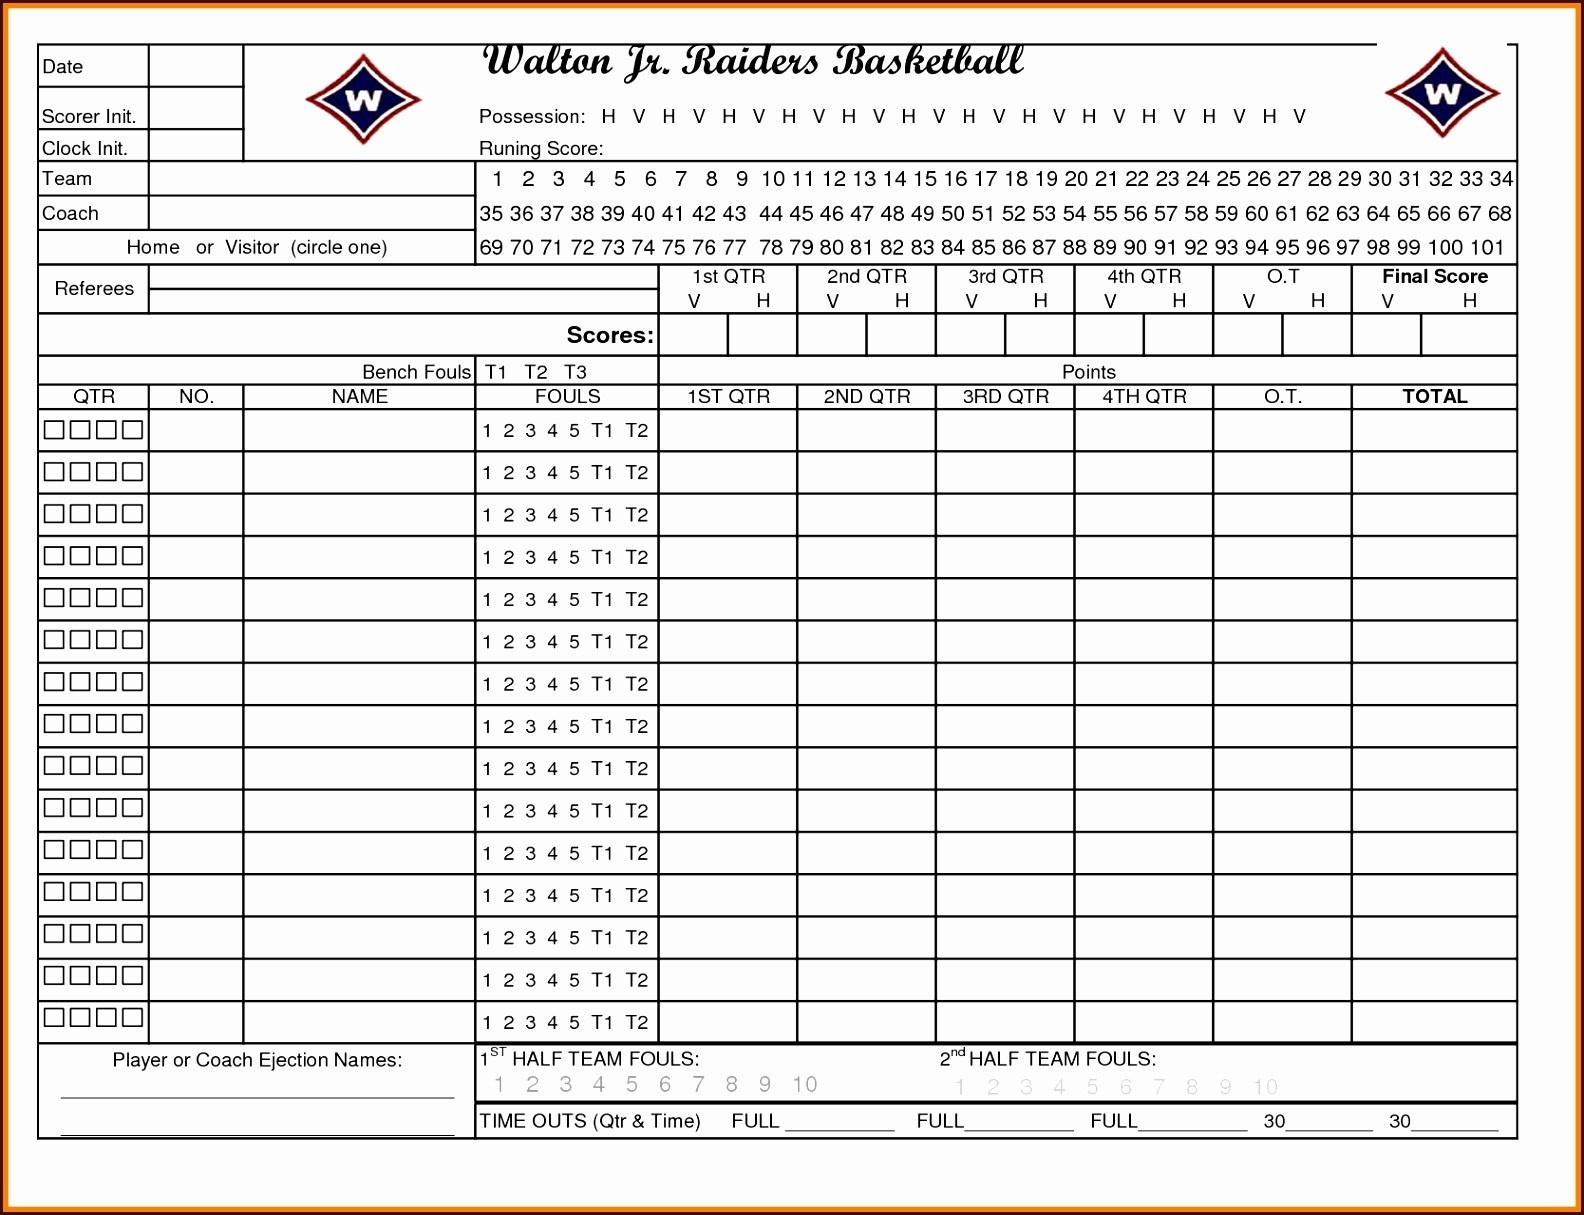 Than Volleyball Stat Sheets Score Sheet Pic1 | Trafficfunnlr - Printable Volleyball Stat Sheets Free